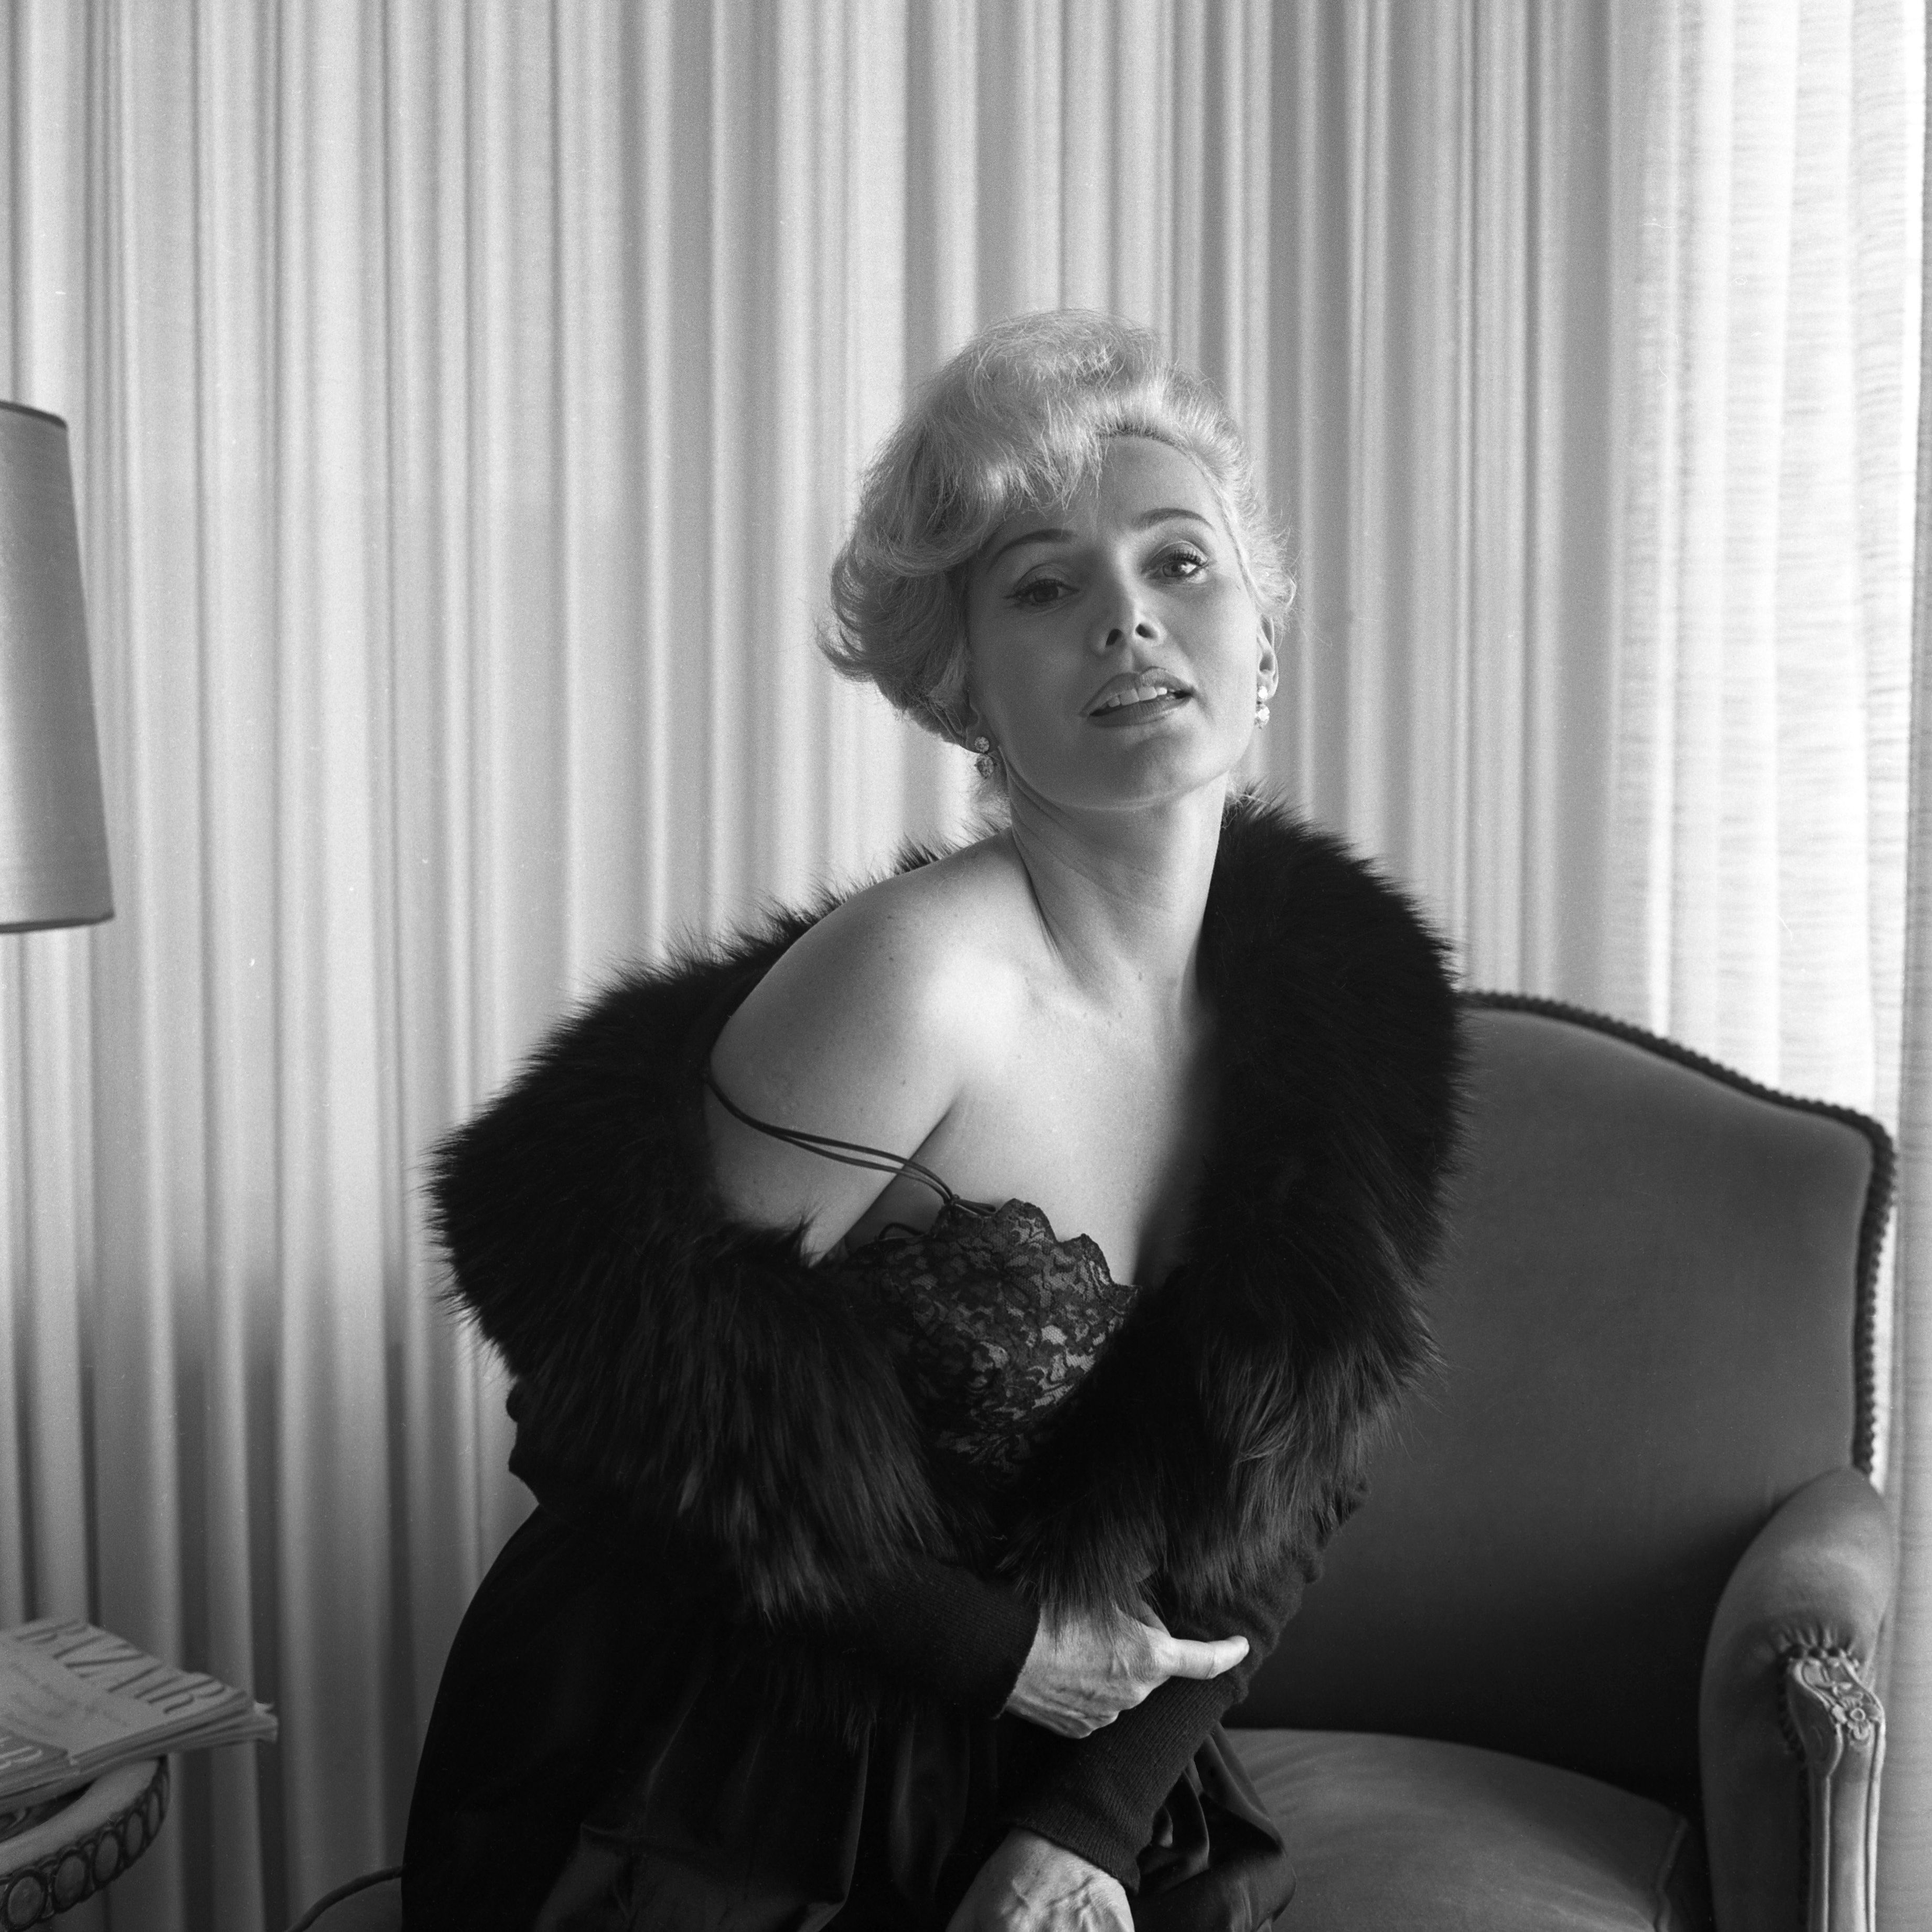 Zsa Zsa Gabor Quotes: The 35 Best Zsa Zsa Gabor Quotes